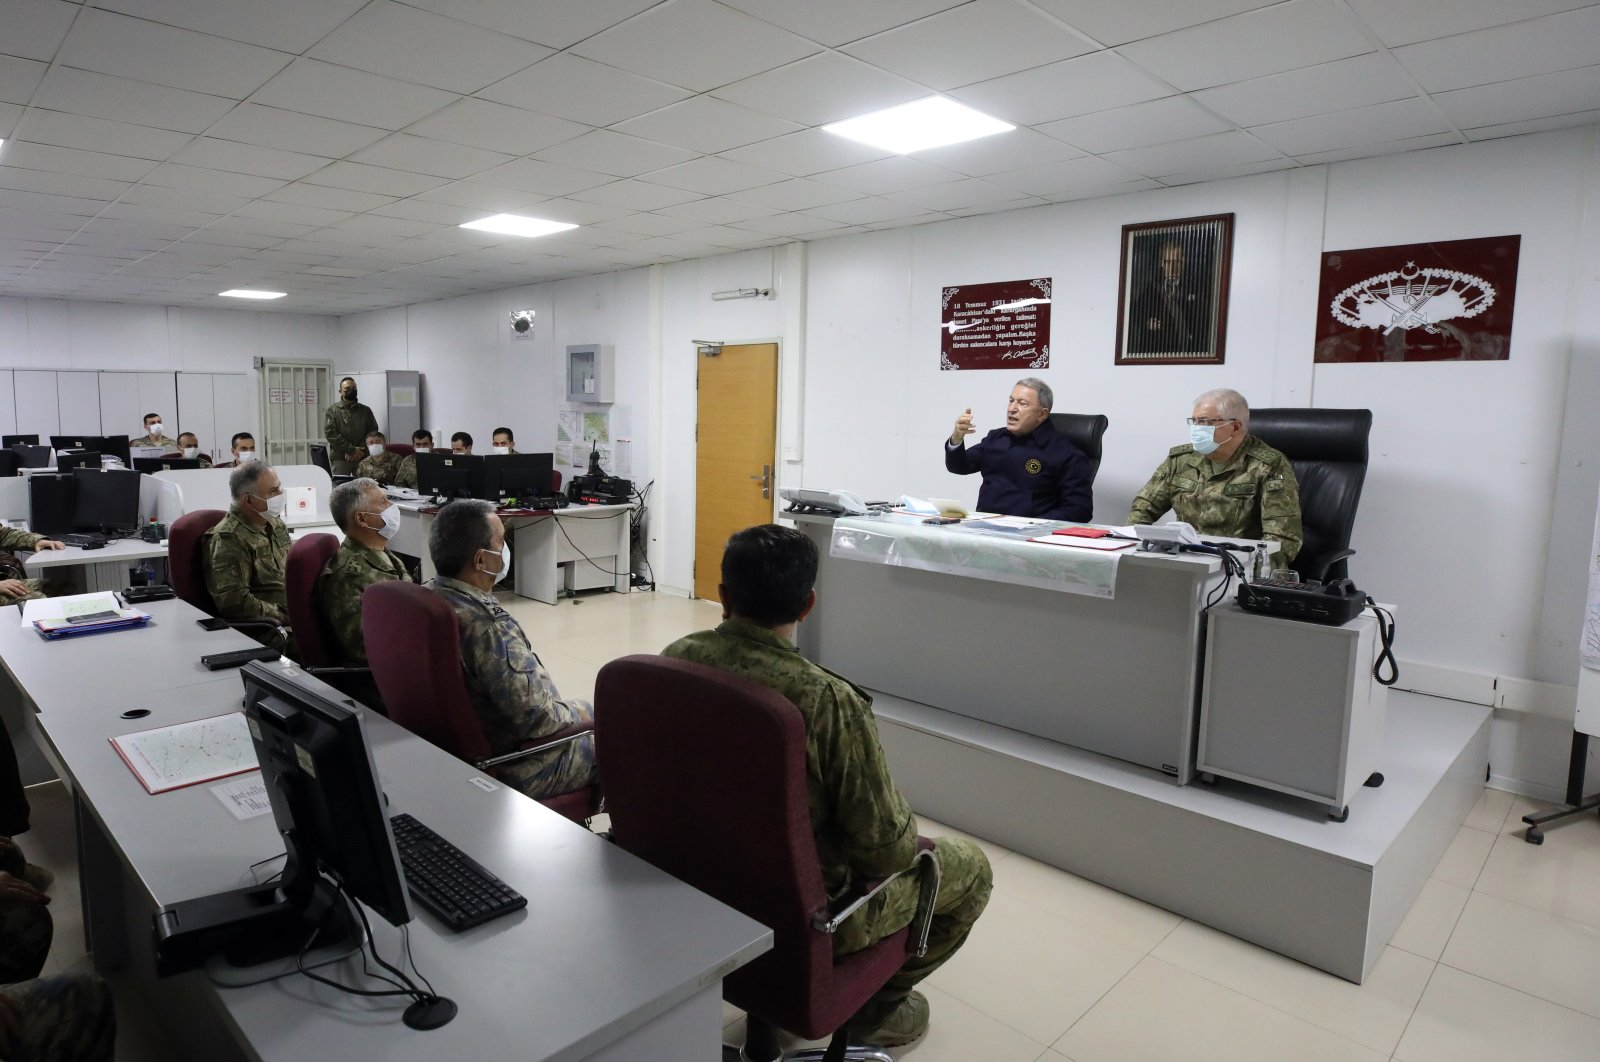 National Defense Minister Hulusi Akar speaks while the top brass and other military officials listen during a meeting at the operation center near the border with Iraq, Feb. 14, 2021. (AA Photo)